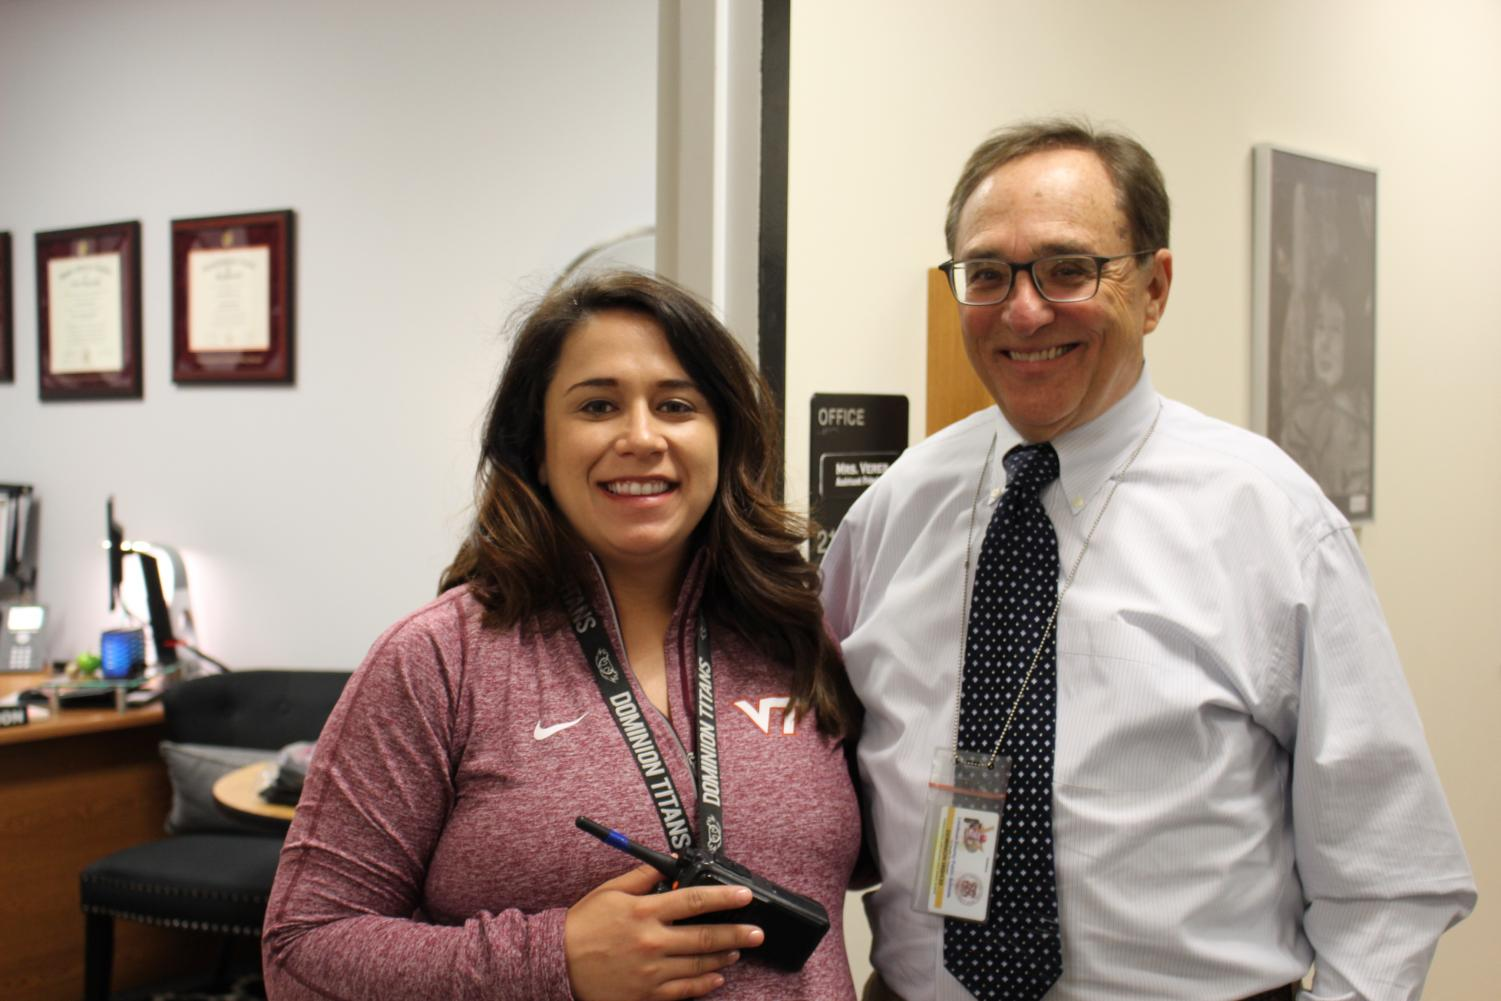 Jim Person returns to be the long-term sub for Mrs. Vereb while she will be on maternity leave.